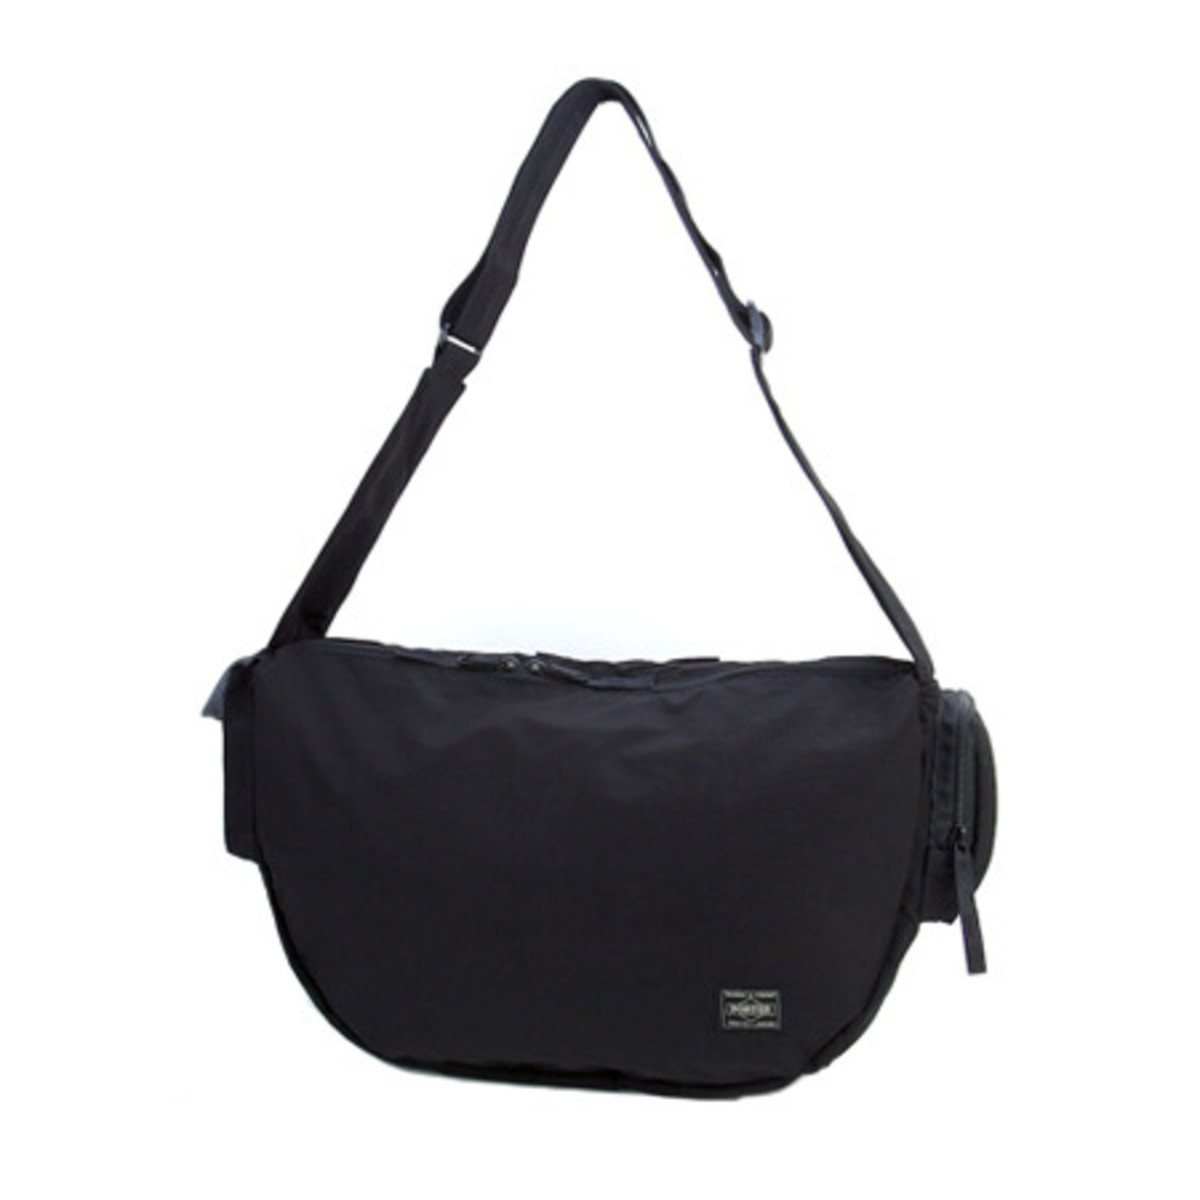 w-zip-shoulder-bag-black